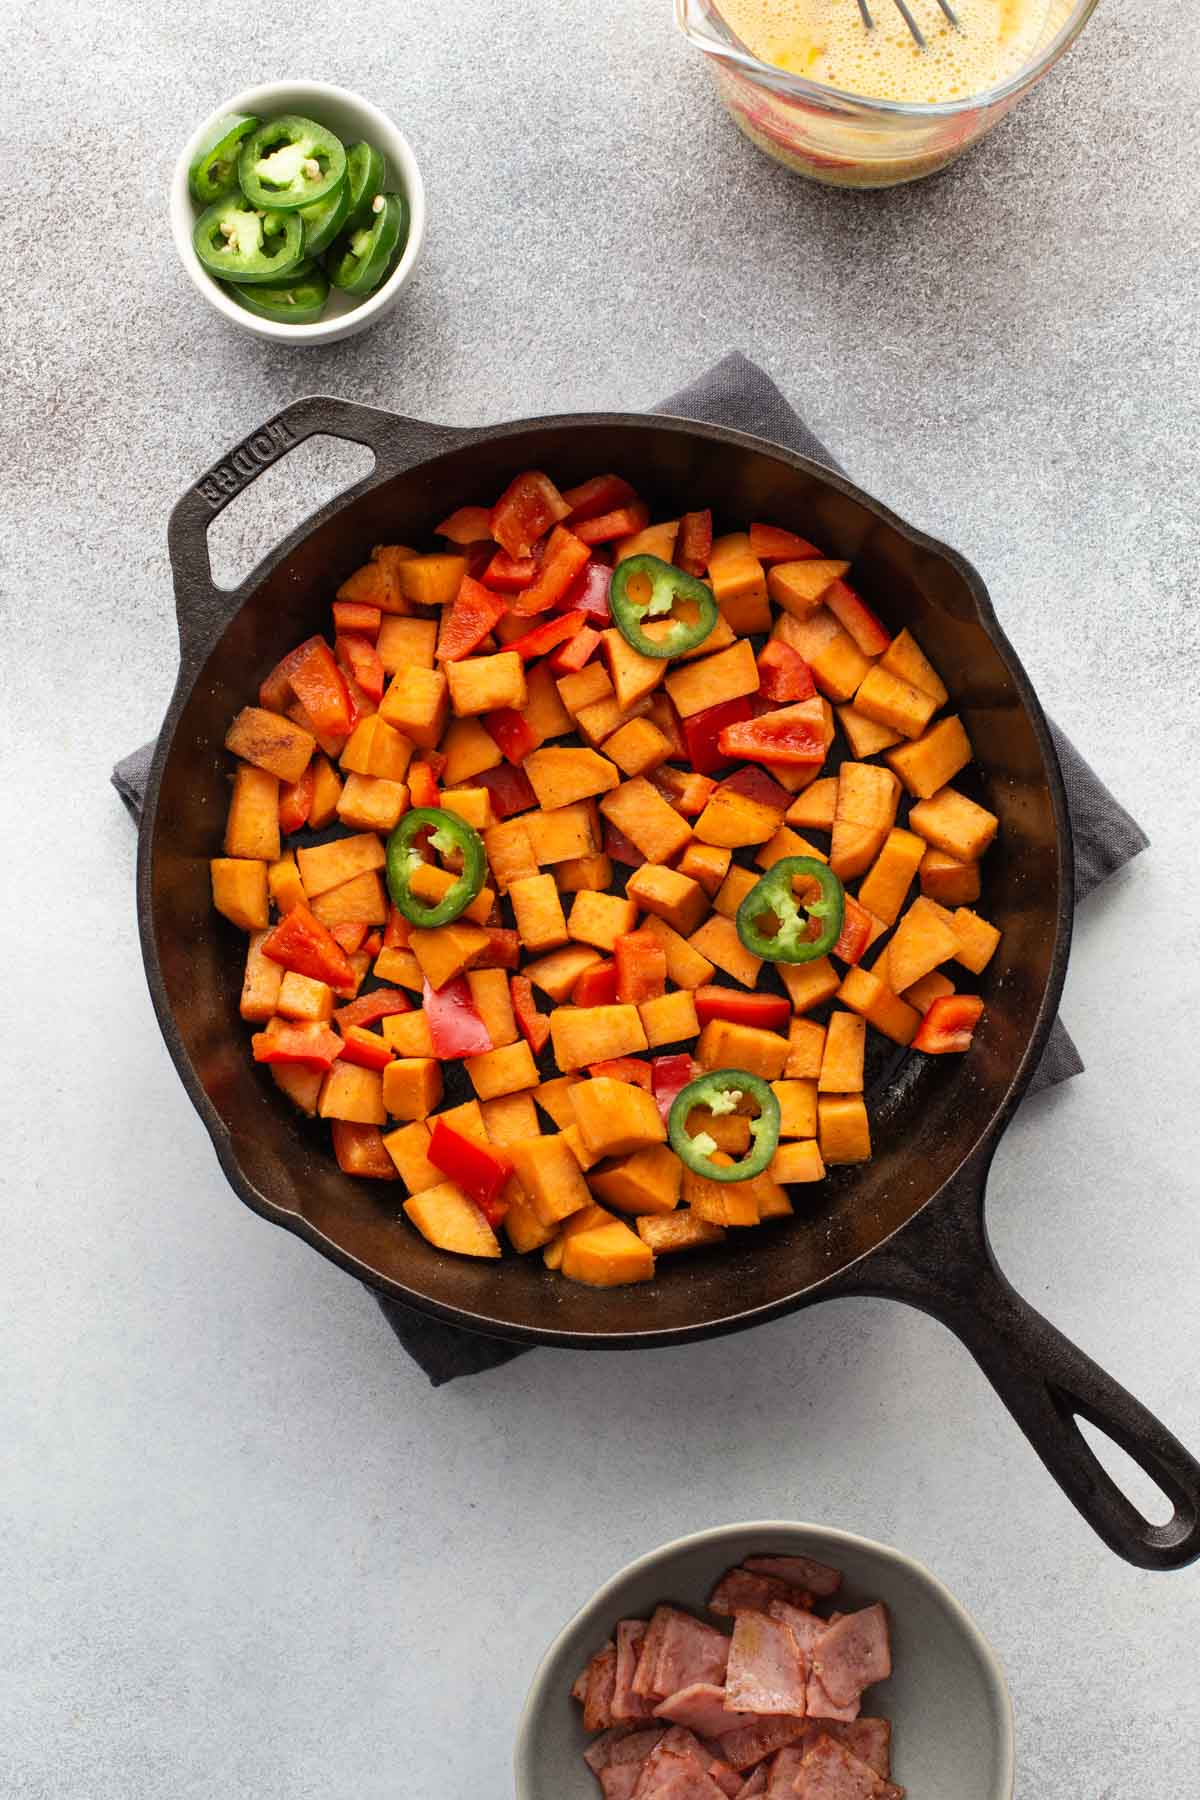 Sweet potatoes and peppers chopped and arranged in a cast iron skillet.